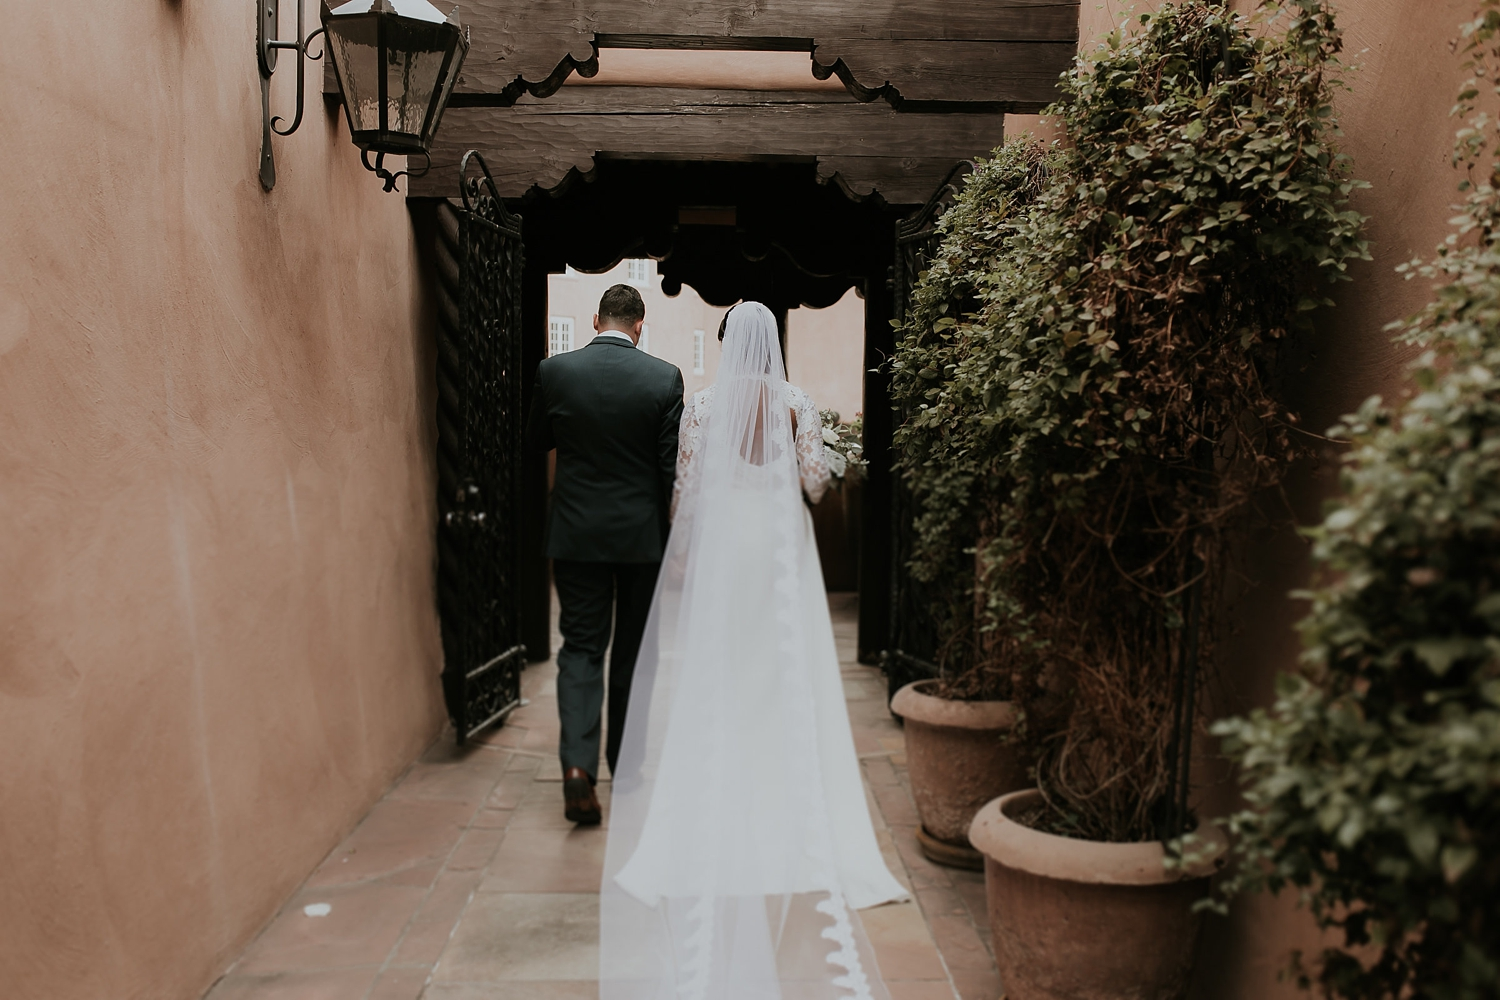 Alicia+lucia+photography+-+albuquerque+wedding+photographer+-+santa+fe+wedding+photography+-+new+mexico+wedding+photographer+-+new+mexico+engagement+-+la+fonda+new+mexico+wedding+-+la+fonda+fall+wedding_0054.jpg